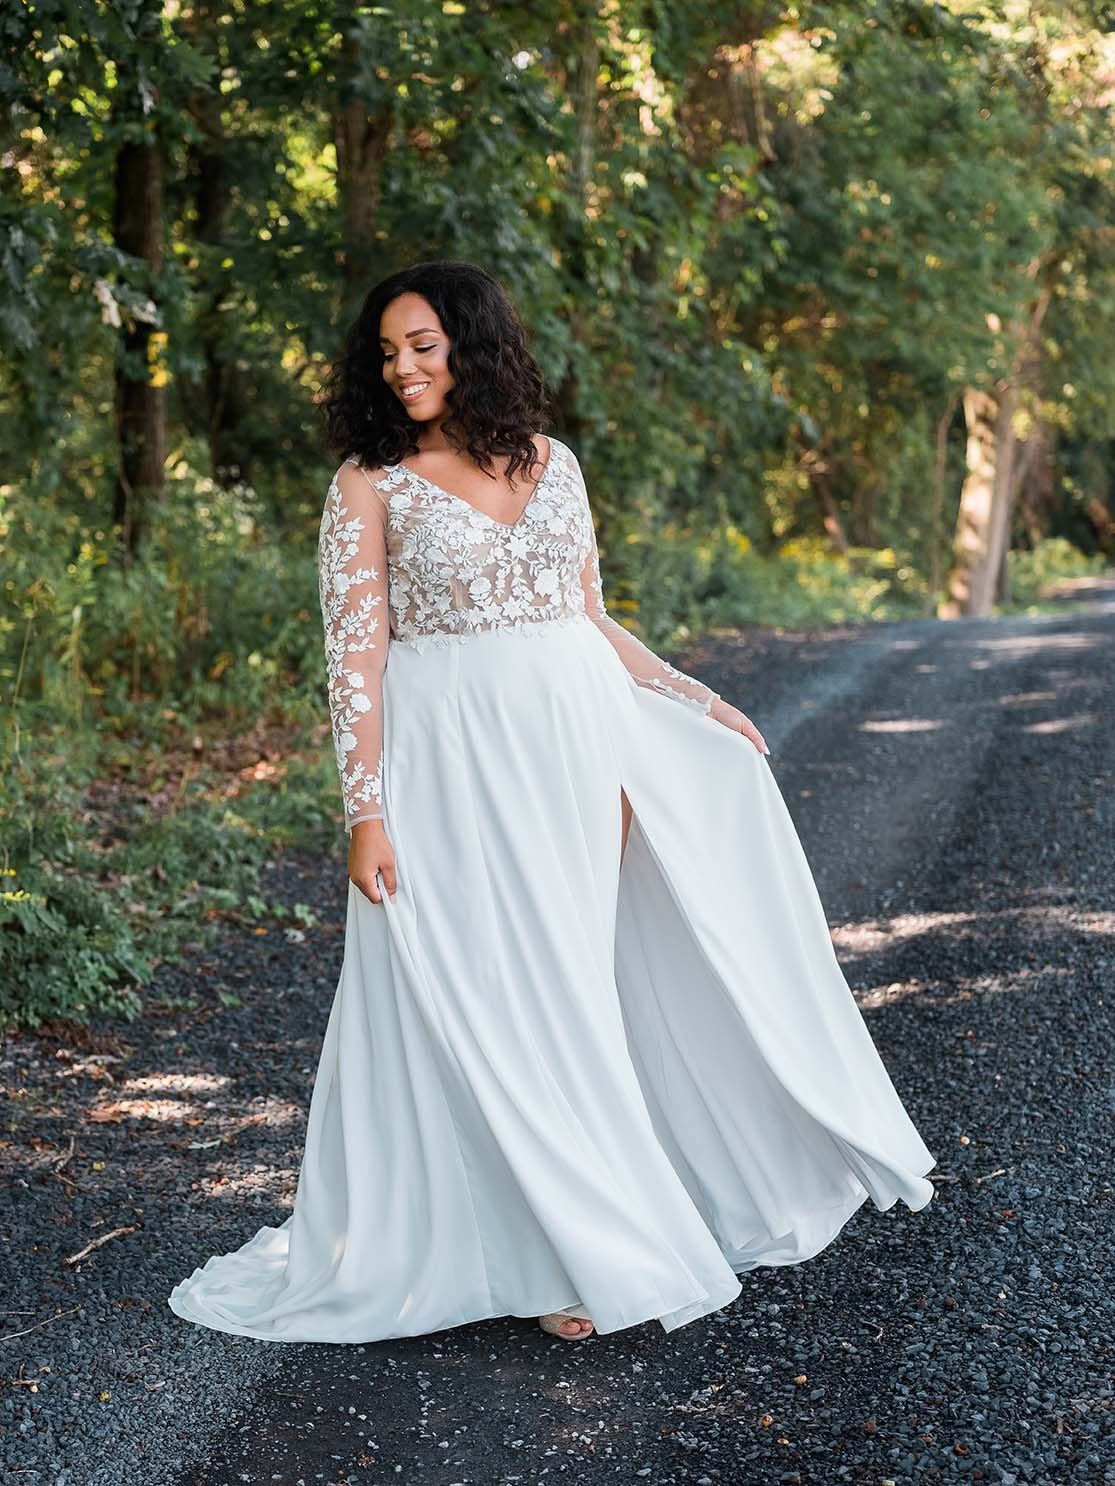 Rebecca_Schoneveld_Juliet_gown_long_sleeved_nude_tulle_embroidered_bodiec_skit_romantic_boho_18.jpg